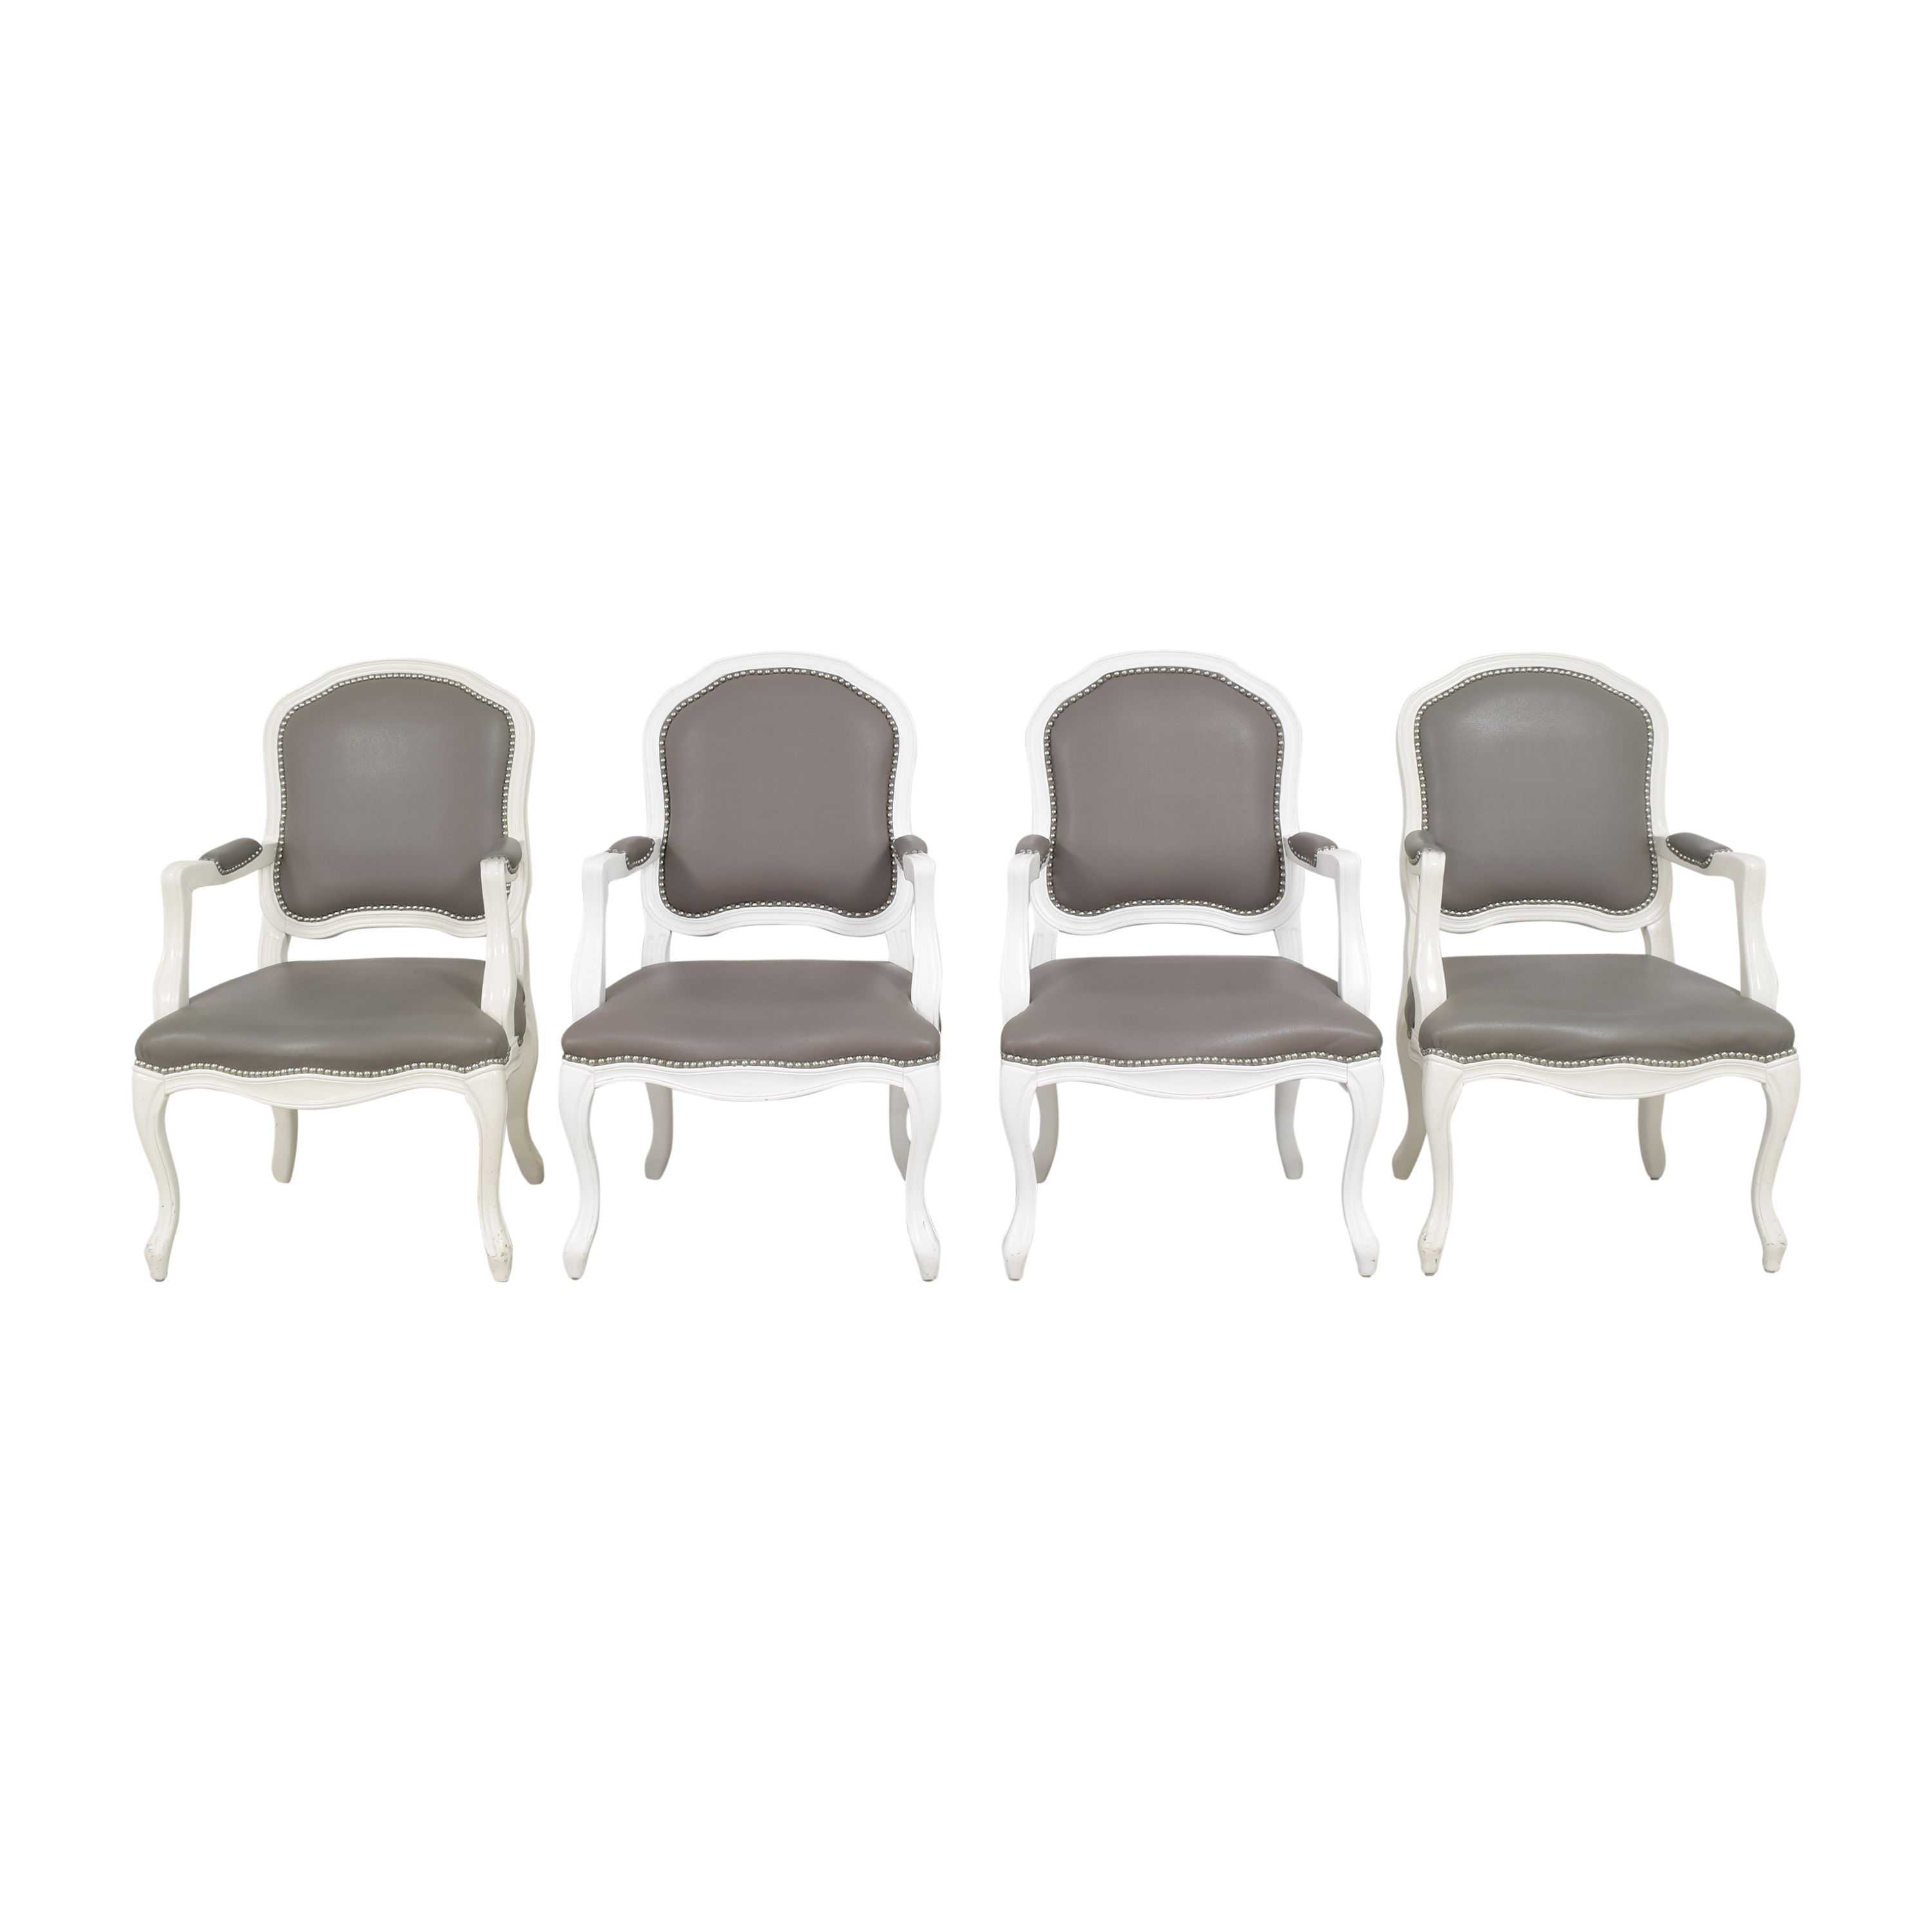 CB2 CB2 Stick Around Arm Chairs for sale